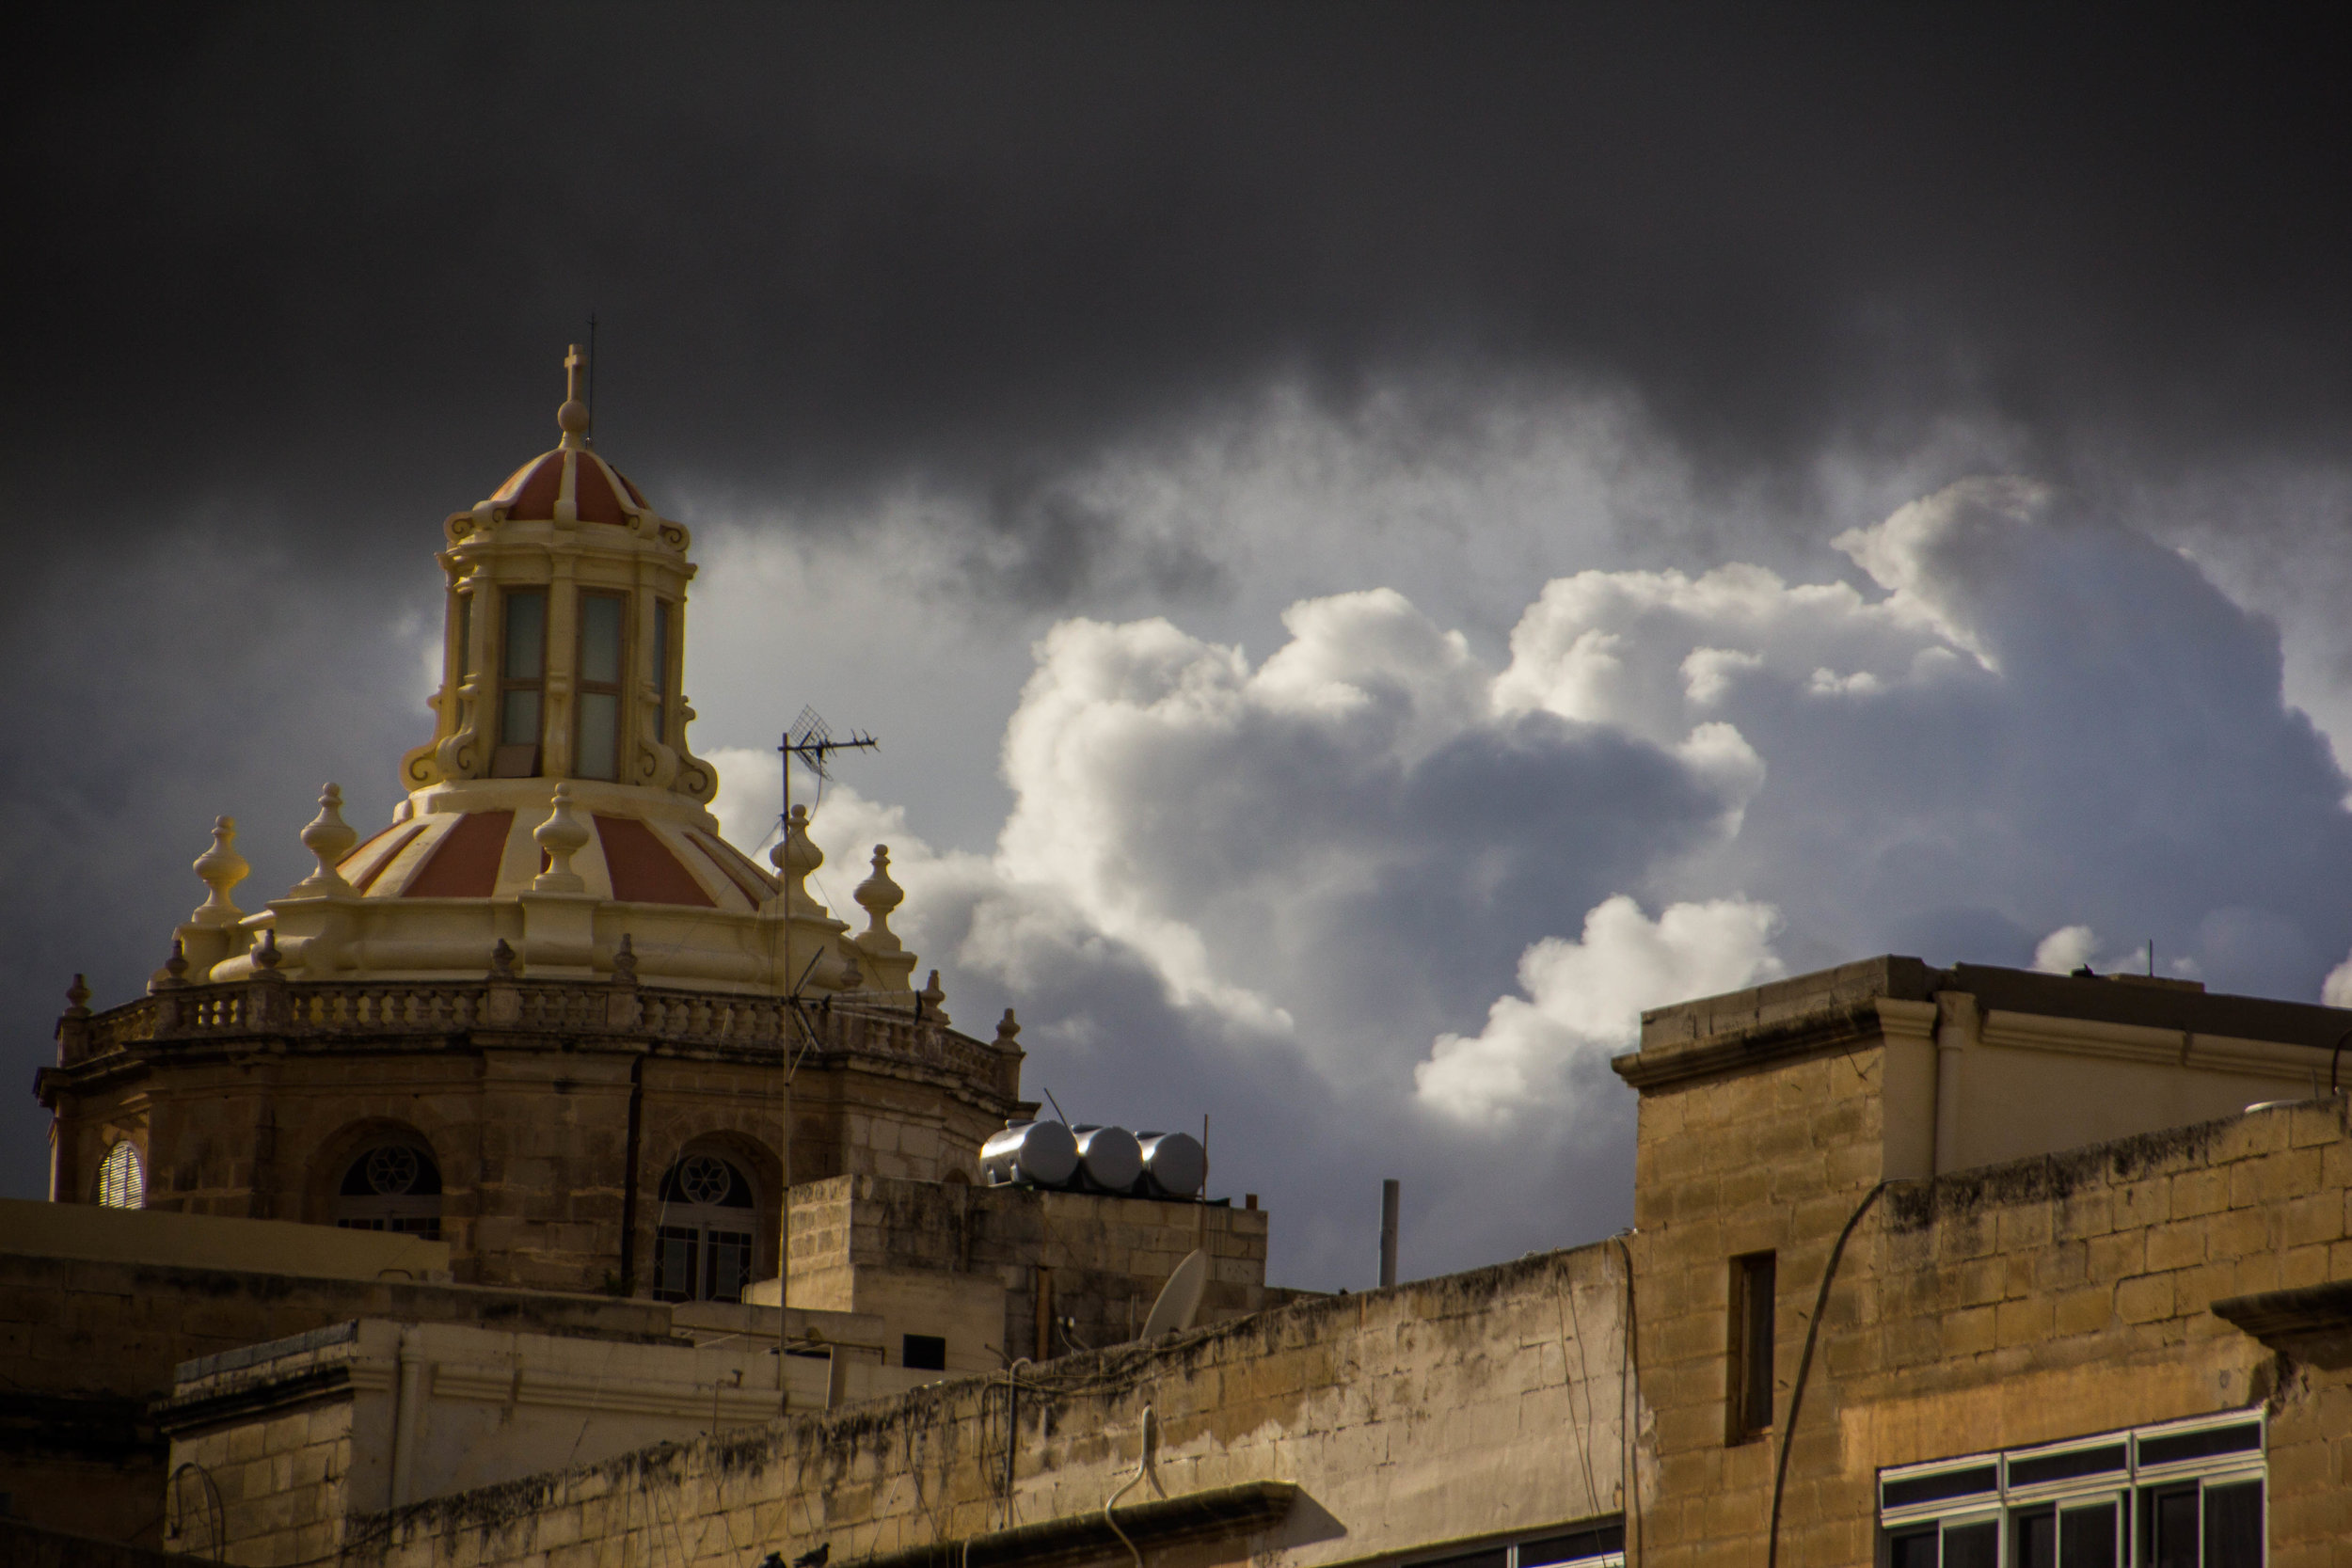 valletta-malta-clouds-rain-streets-photography-33.jpg